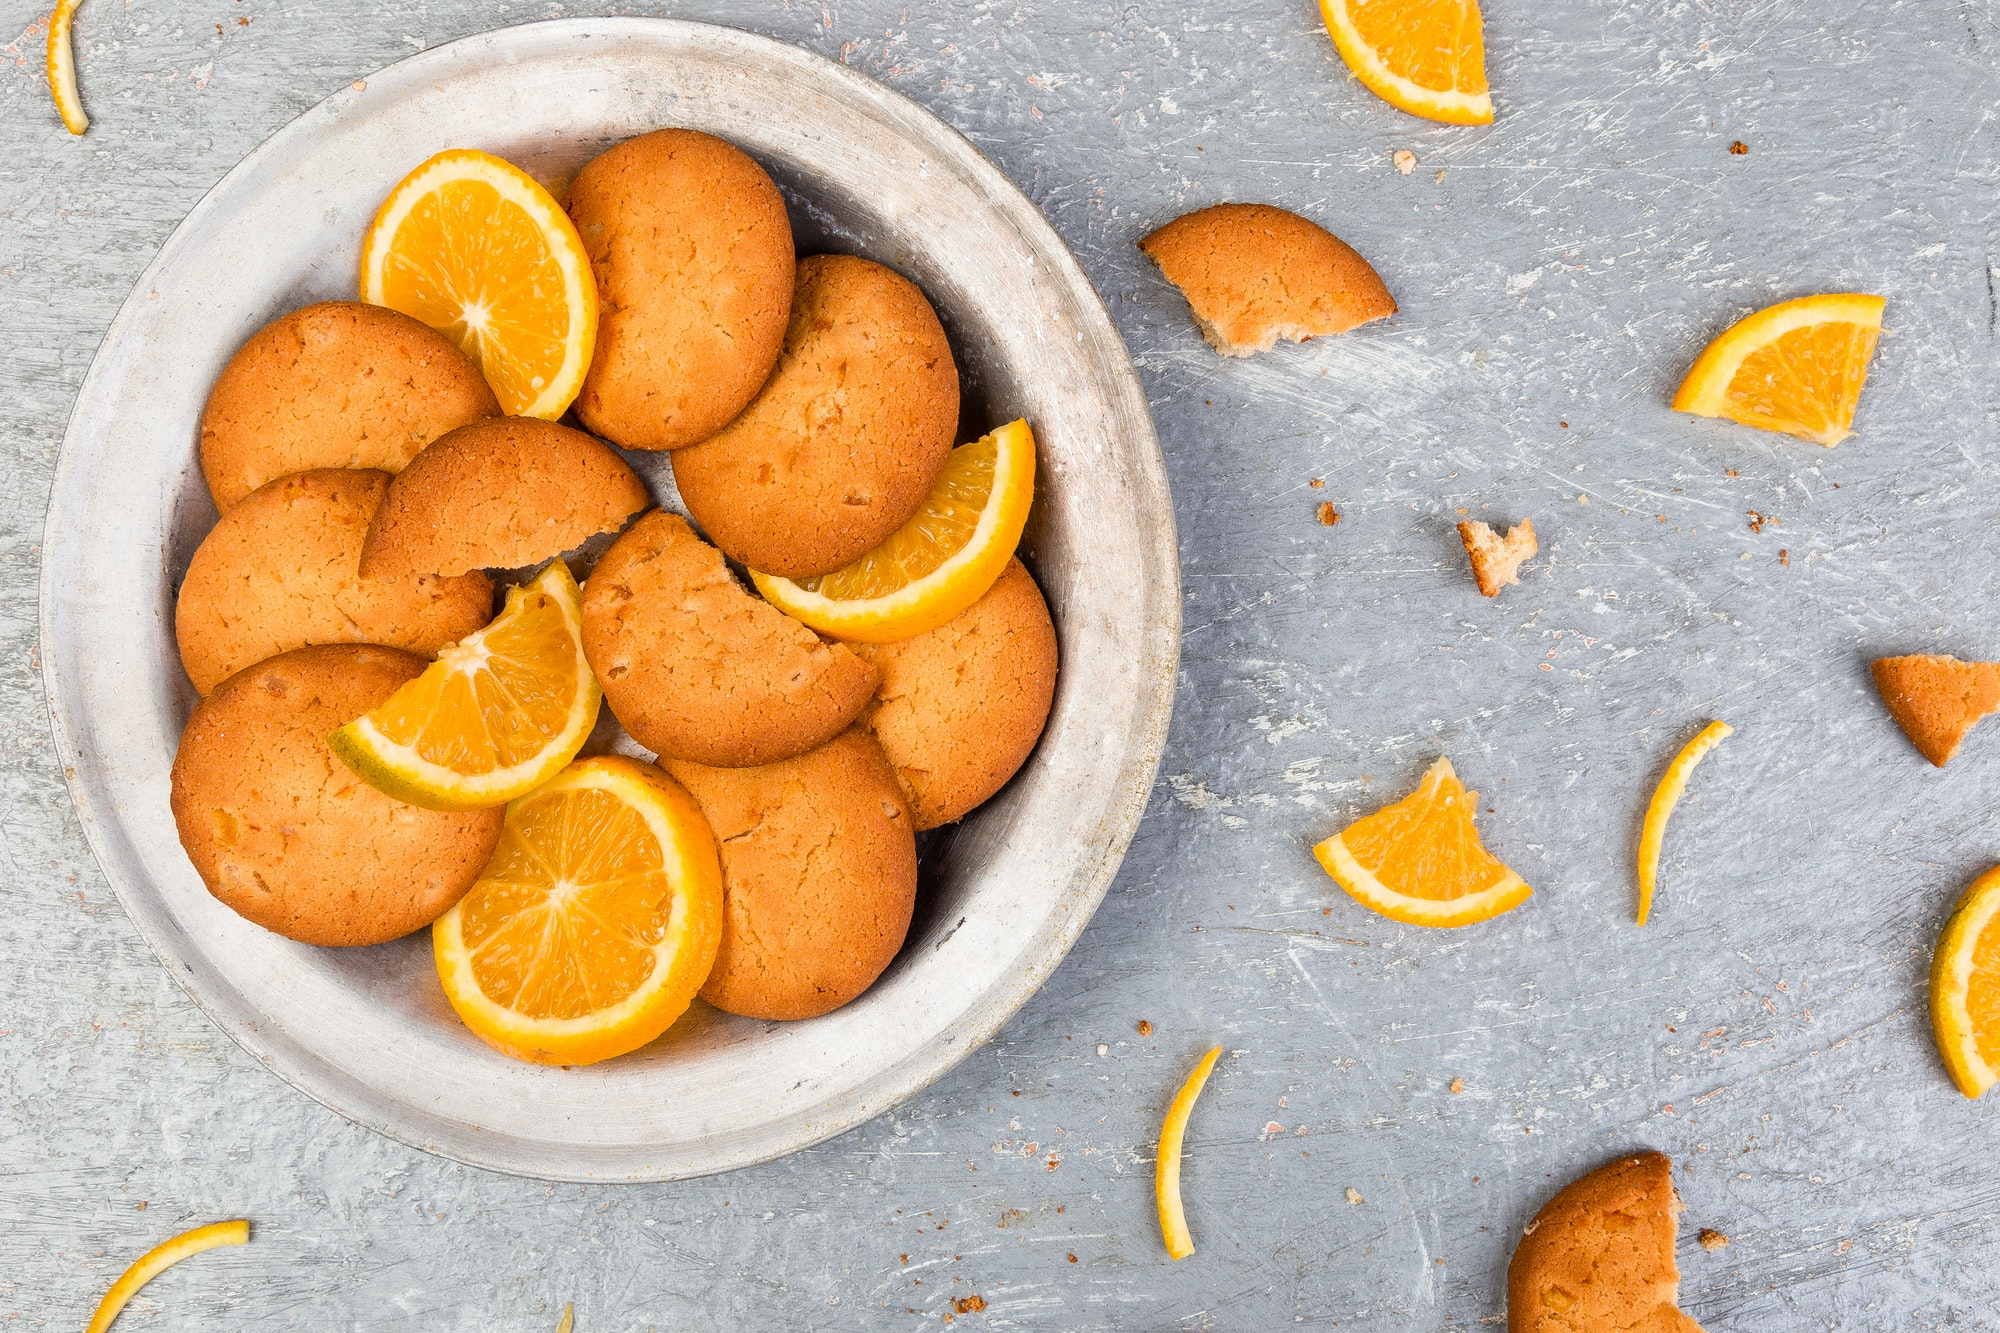 Cookies and orange citrus fruit on metal plate on grey background. Flat lay